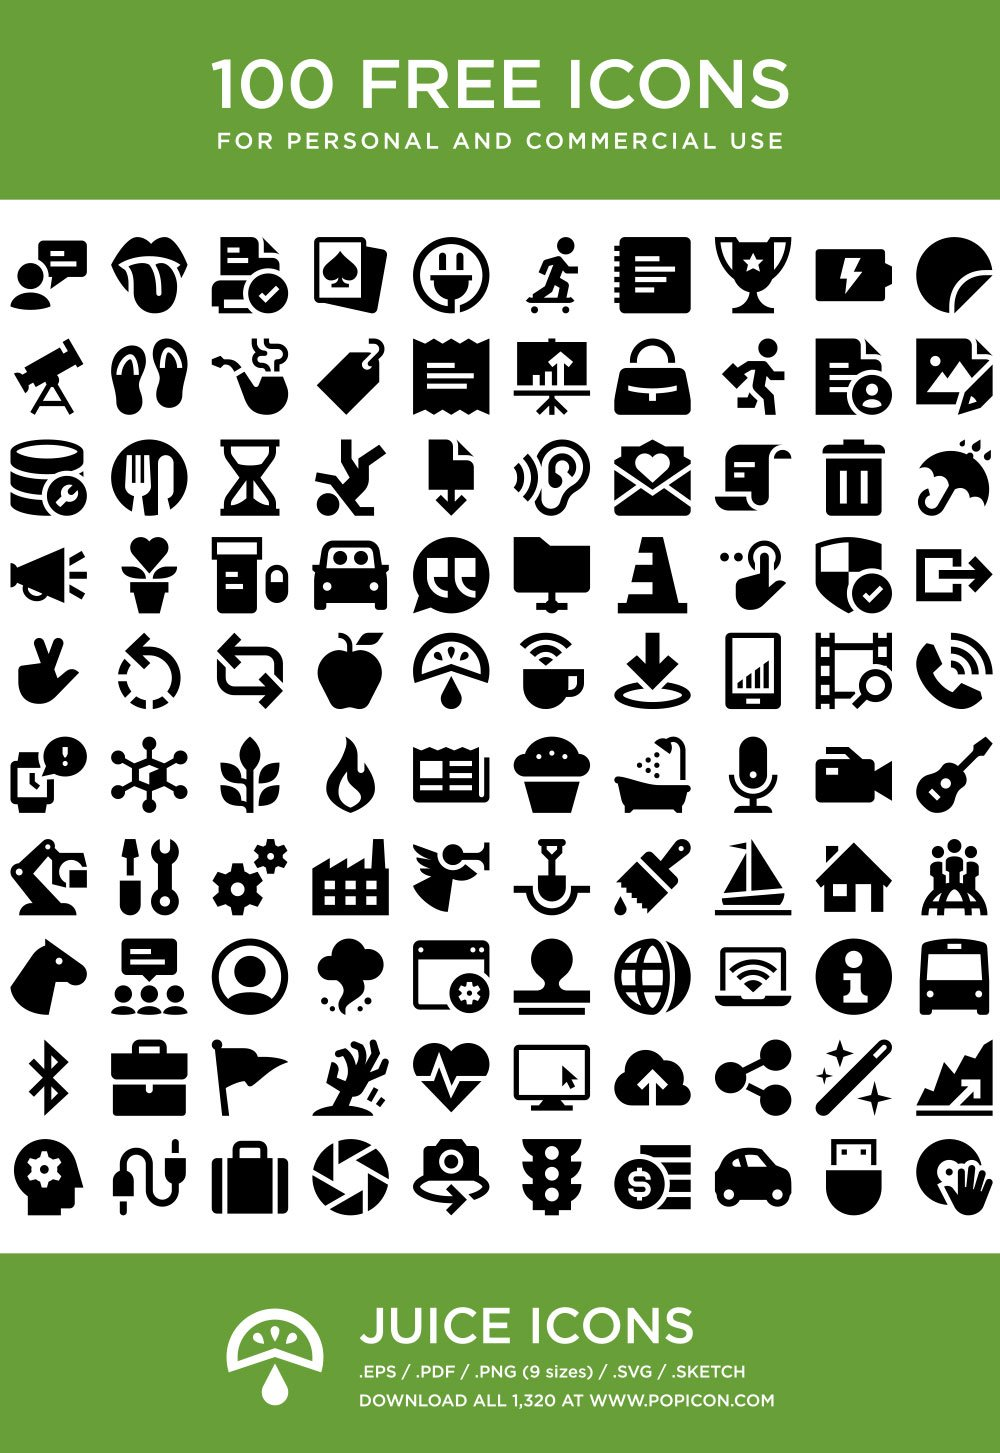 FREE Vector Icon Downloads.